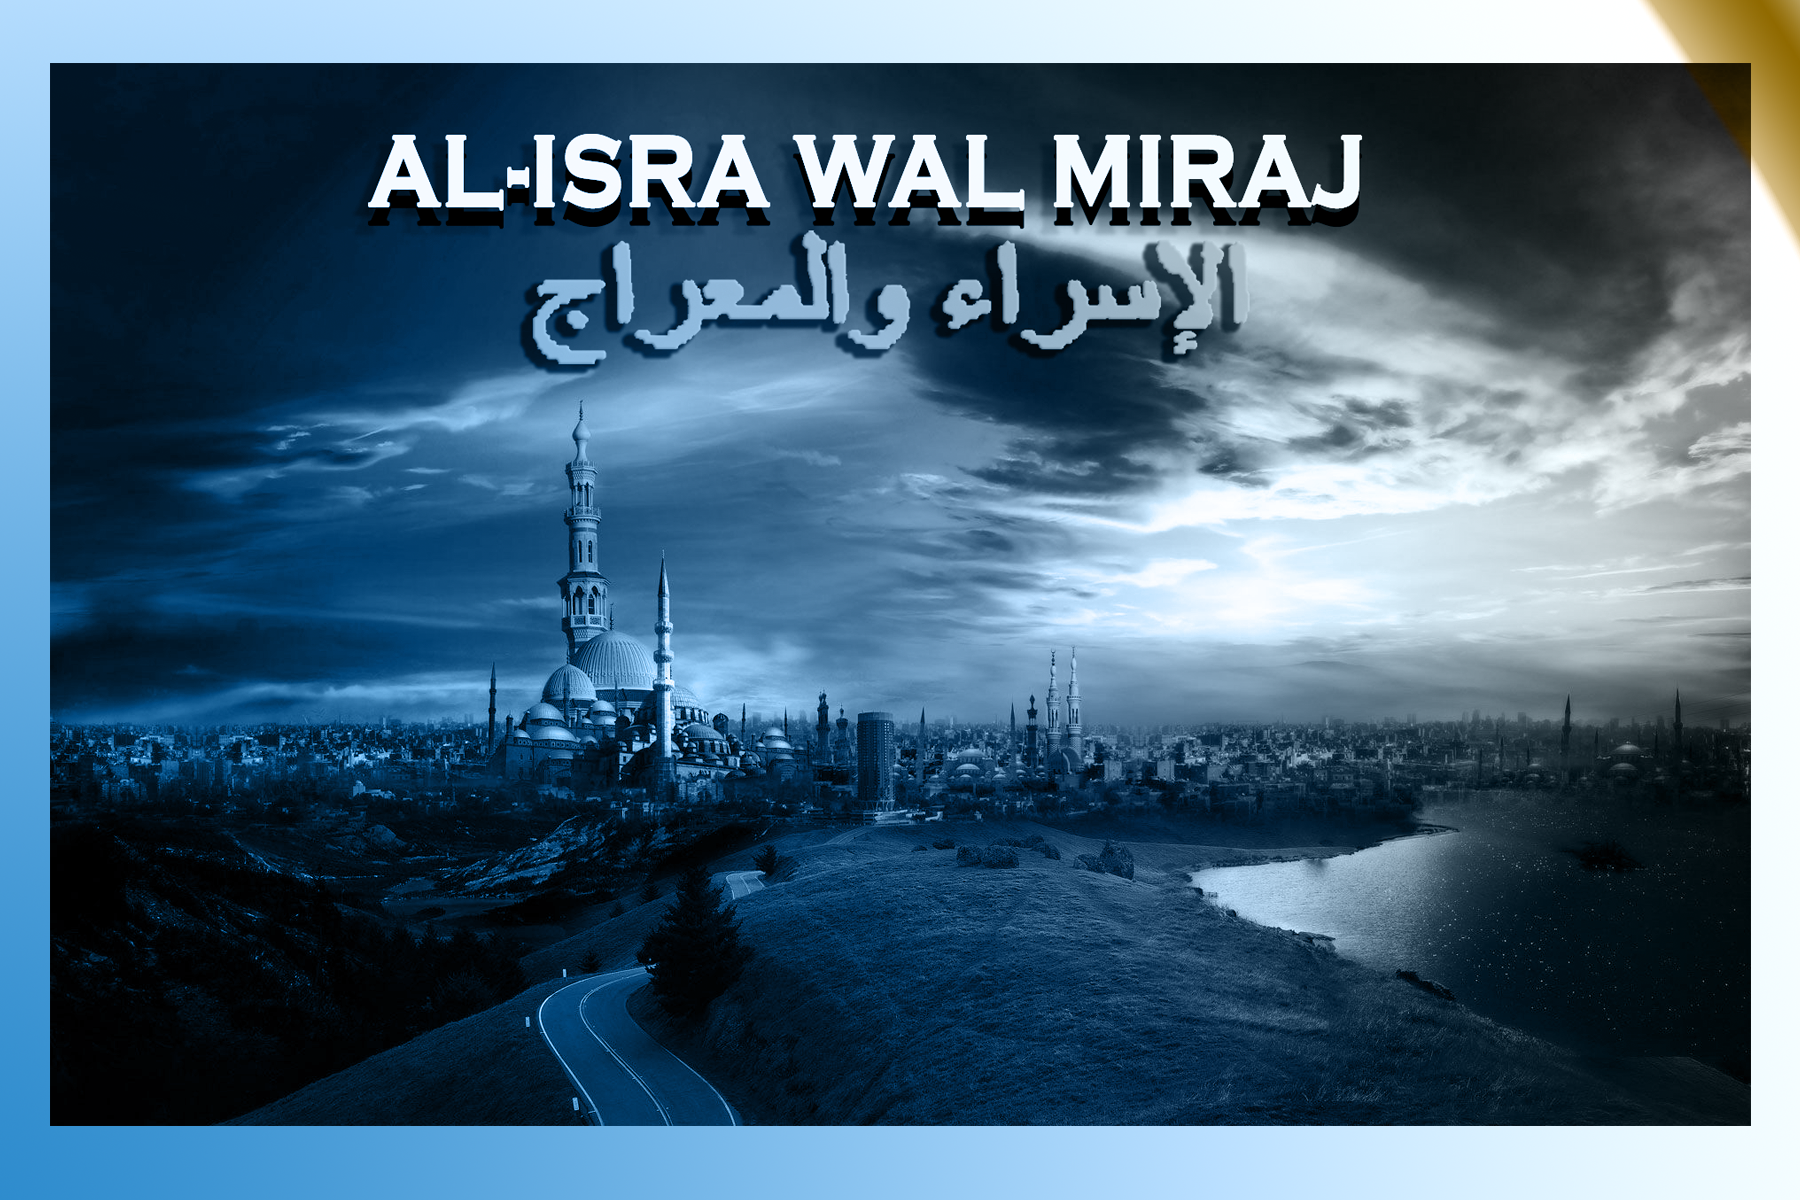 GREETING TO THE RULERS AND CITIZENS OF THE UAE ON THE OCCASION OF AL-ISRA WAL MIRAJ